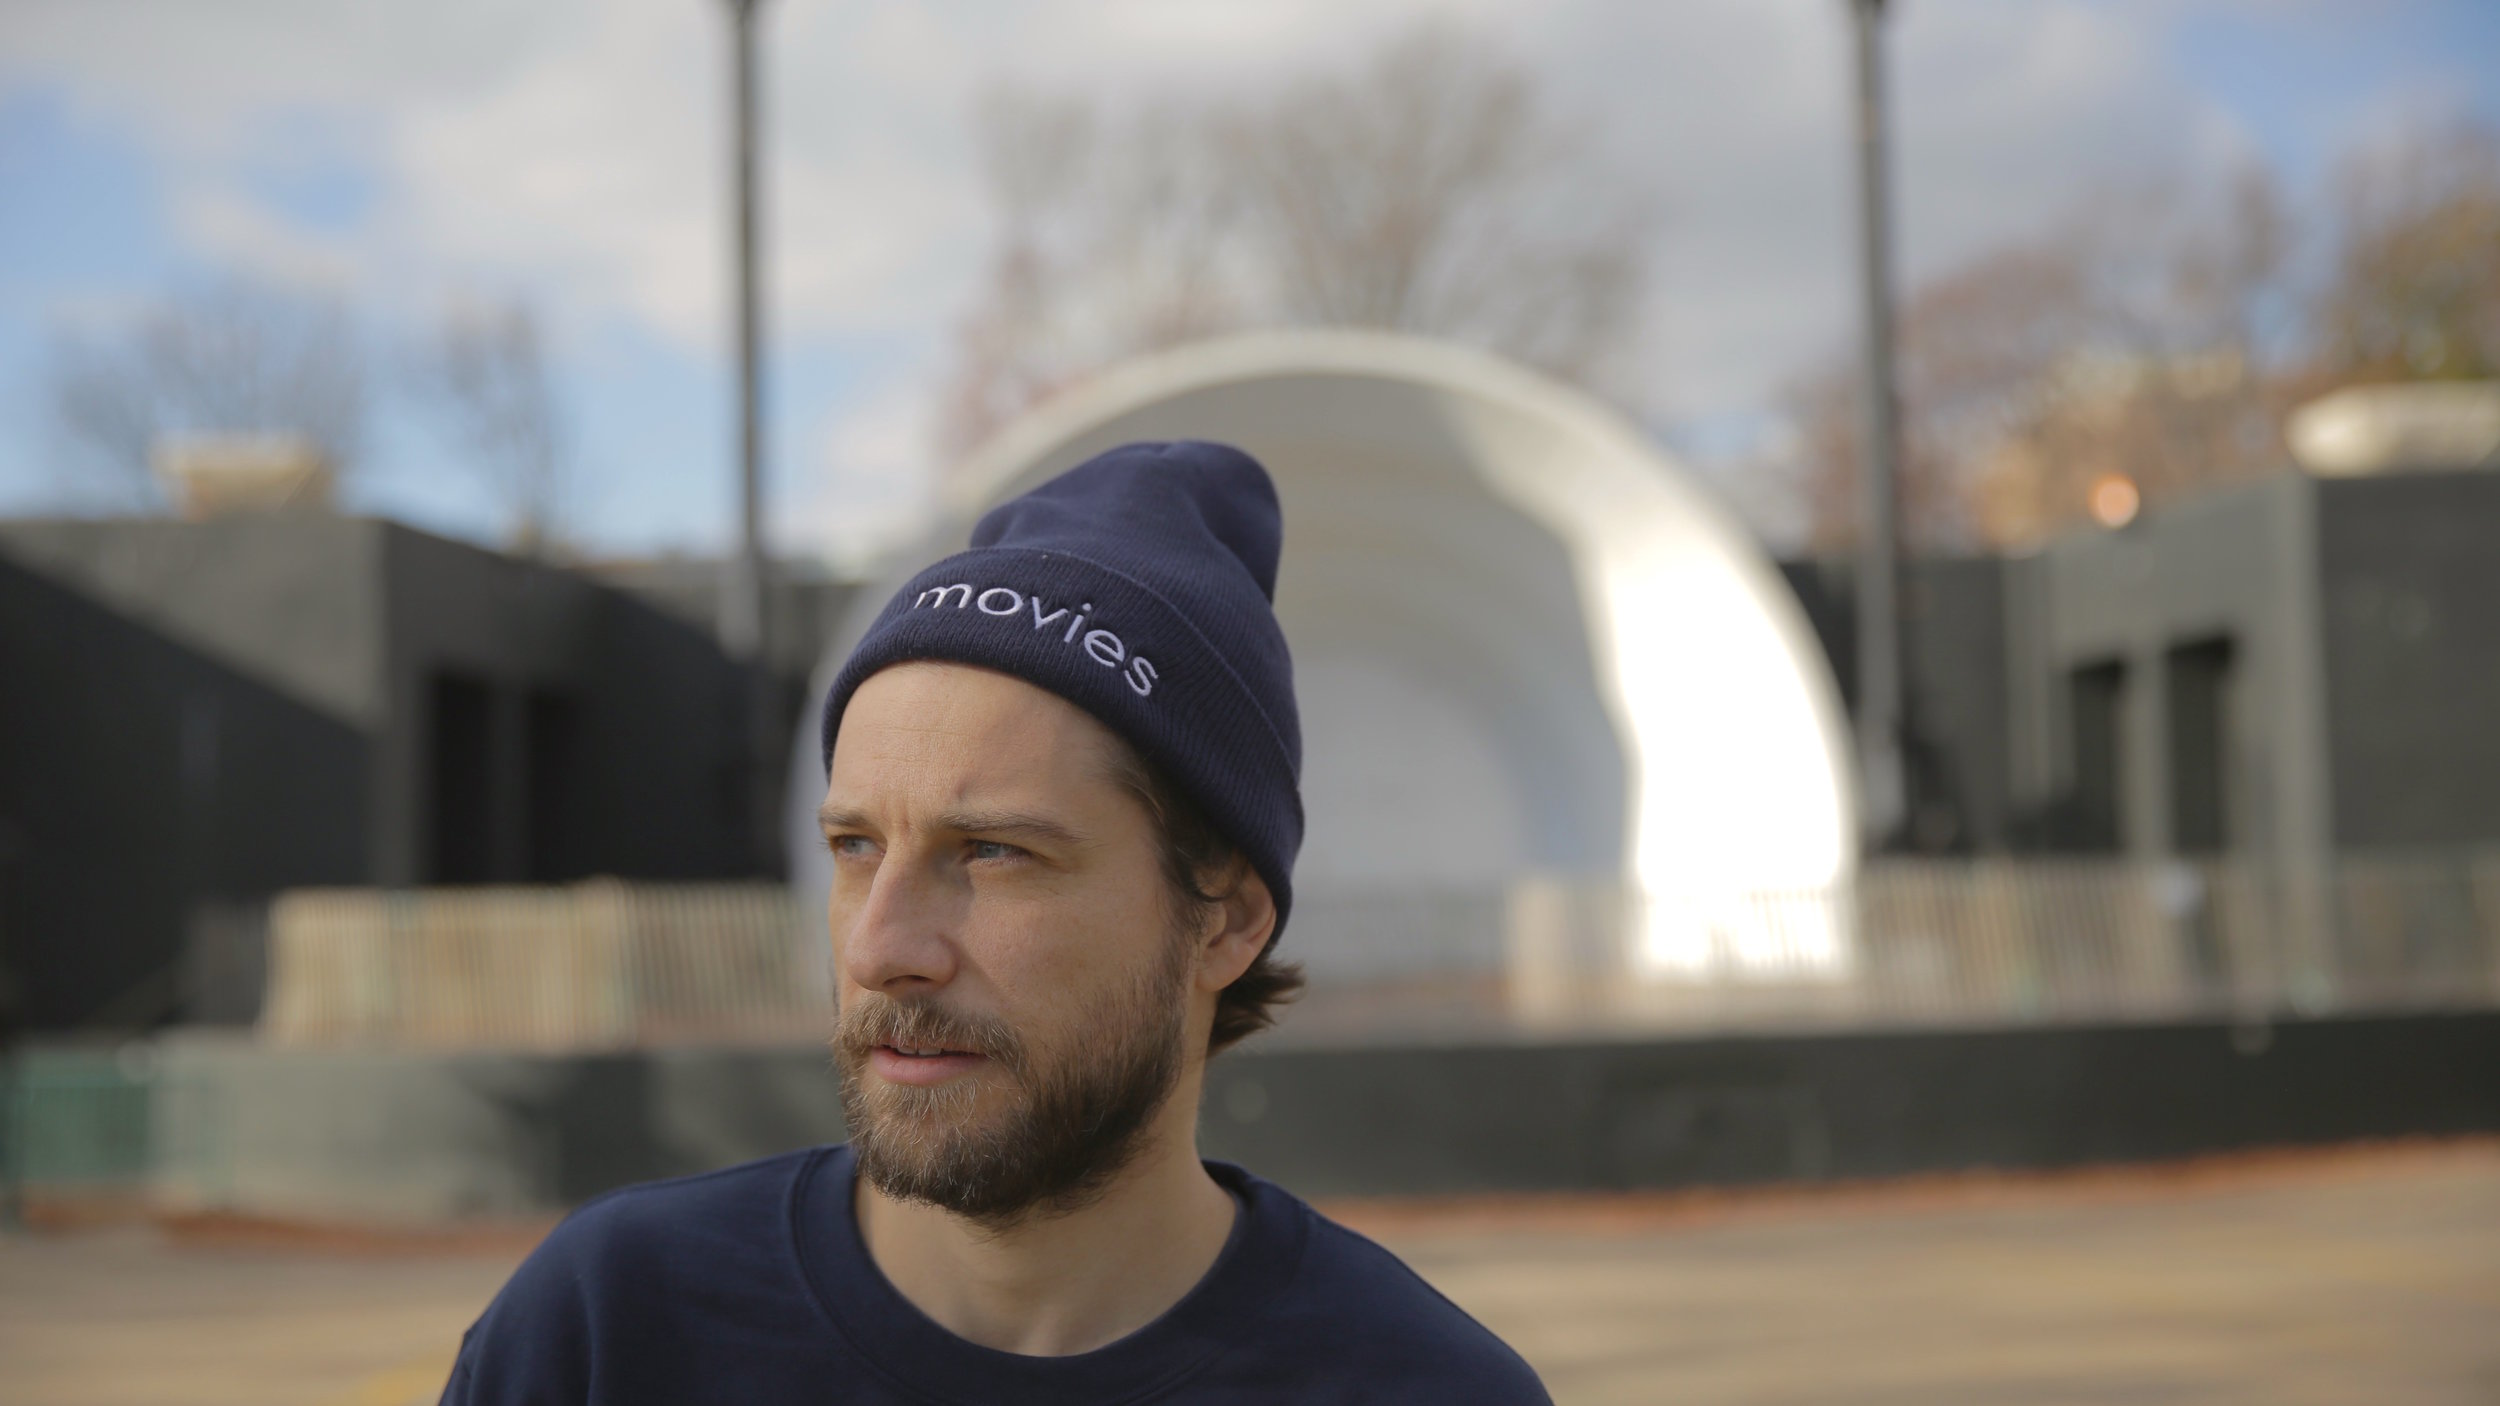 The hat I'm wearing is available for purchase through my company  Movies Brand .